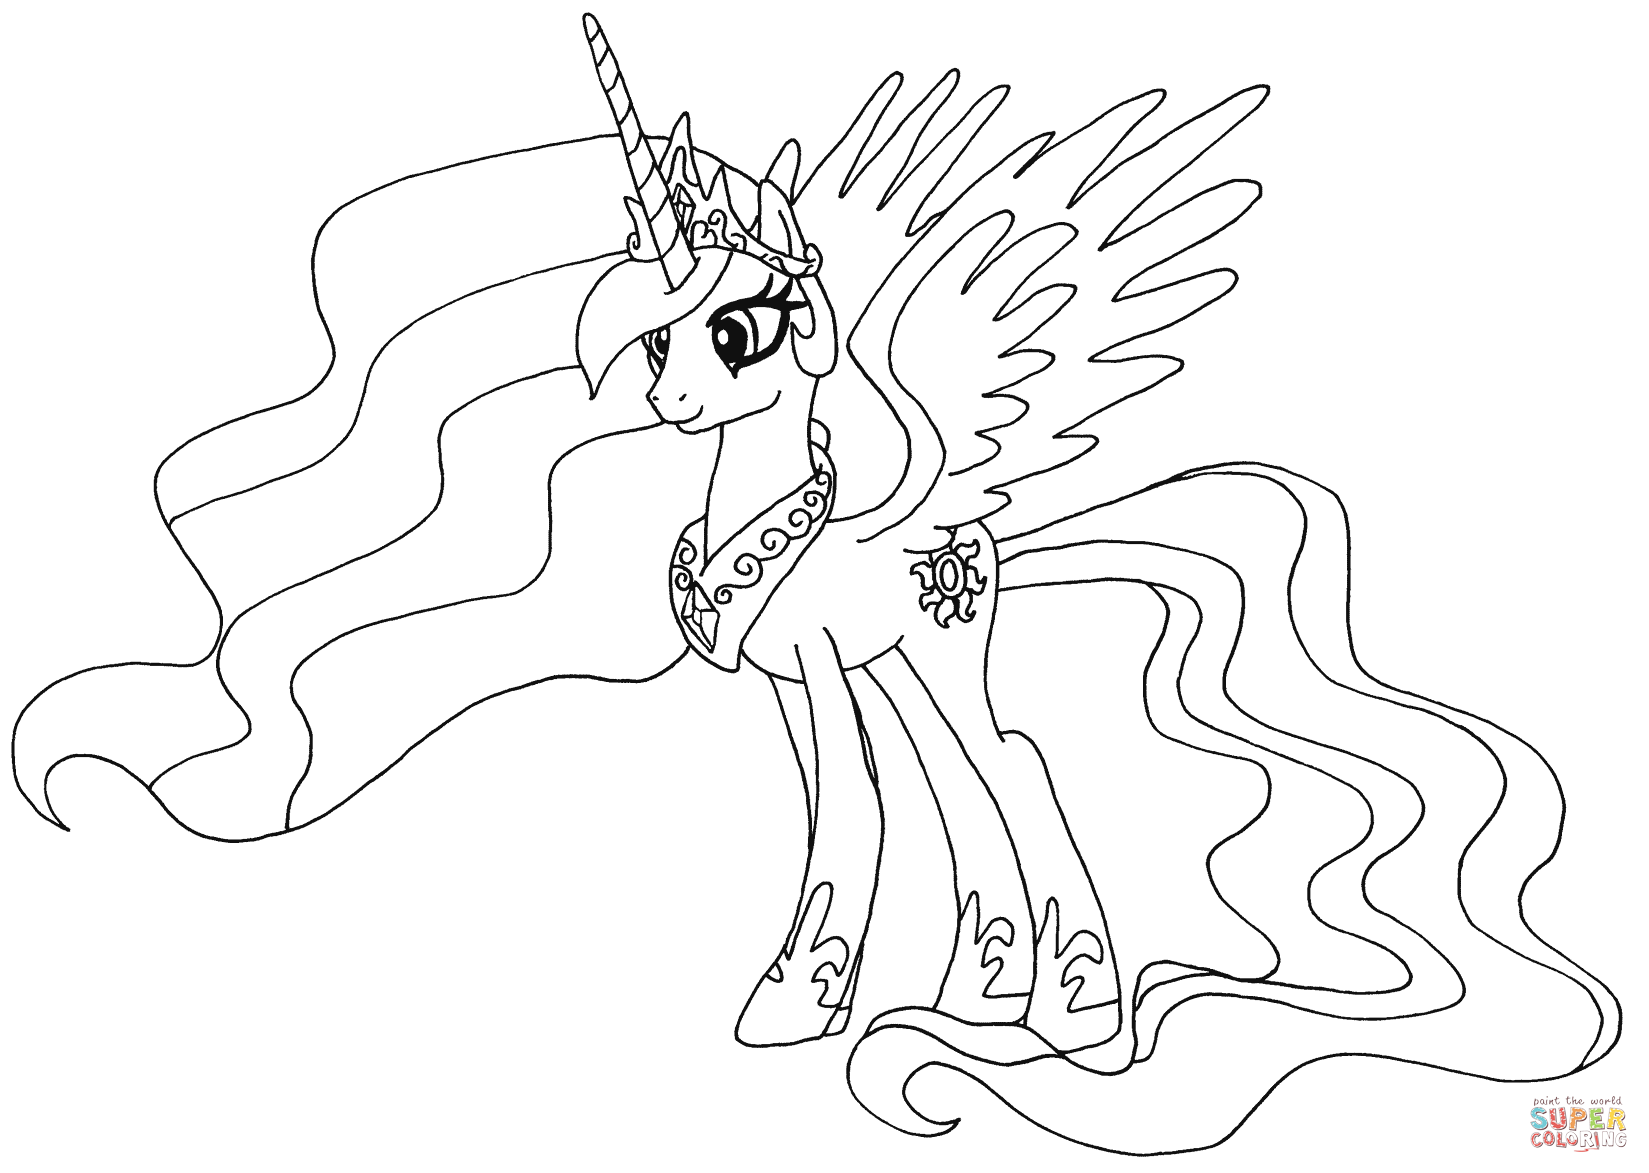 7 photos of the my little pony coloring pages princess celestia my little pony coloring pages princess celestia